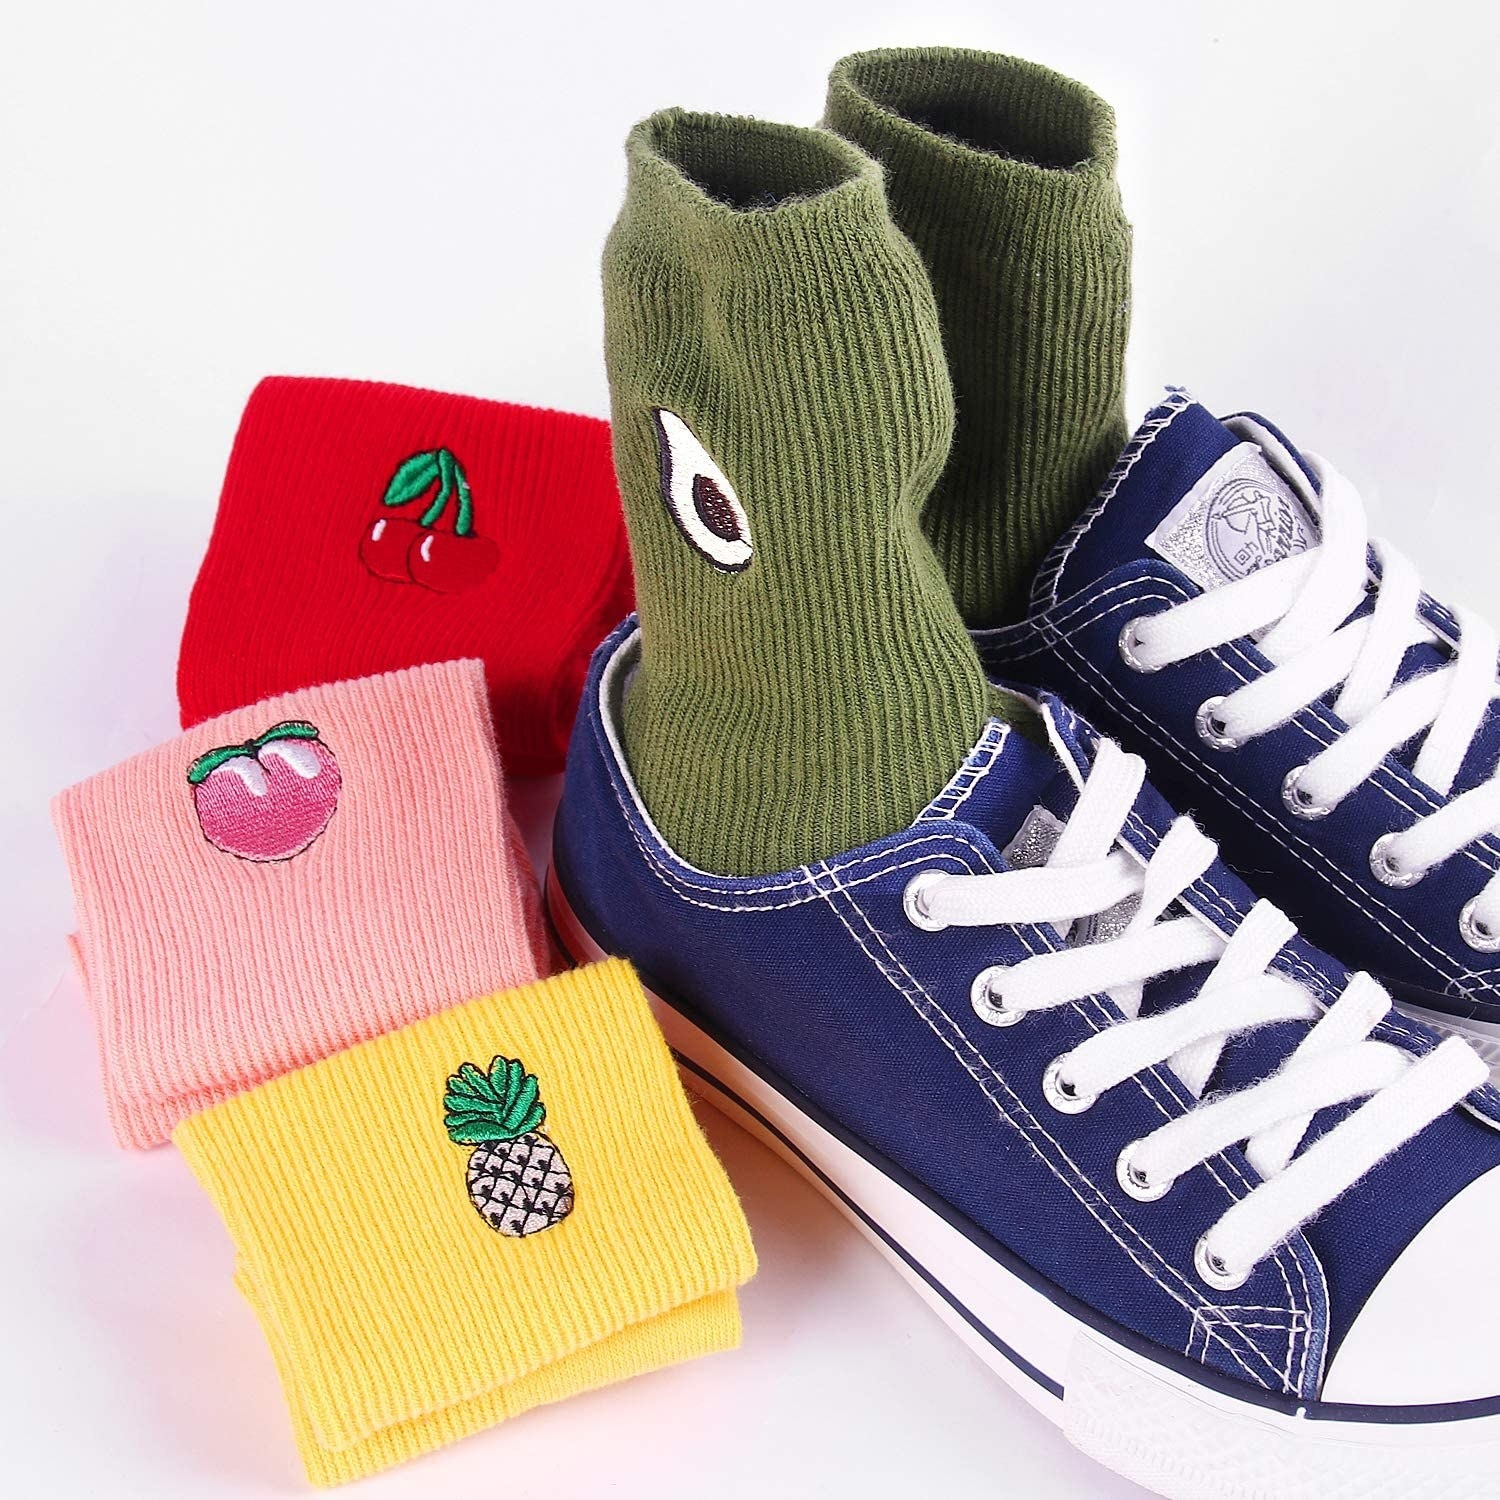 The socks with embroidered fruit on the ankles: green with avocados, red with cherries, pink with peaches, and yellow with pineapples